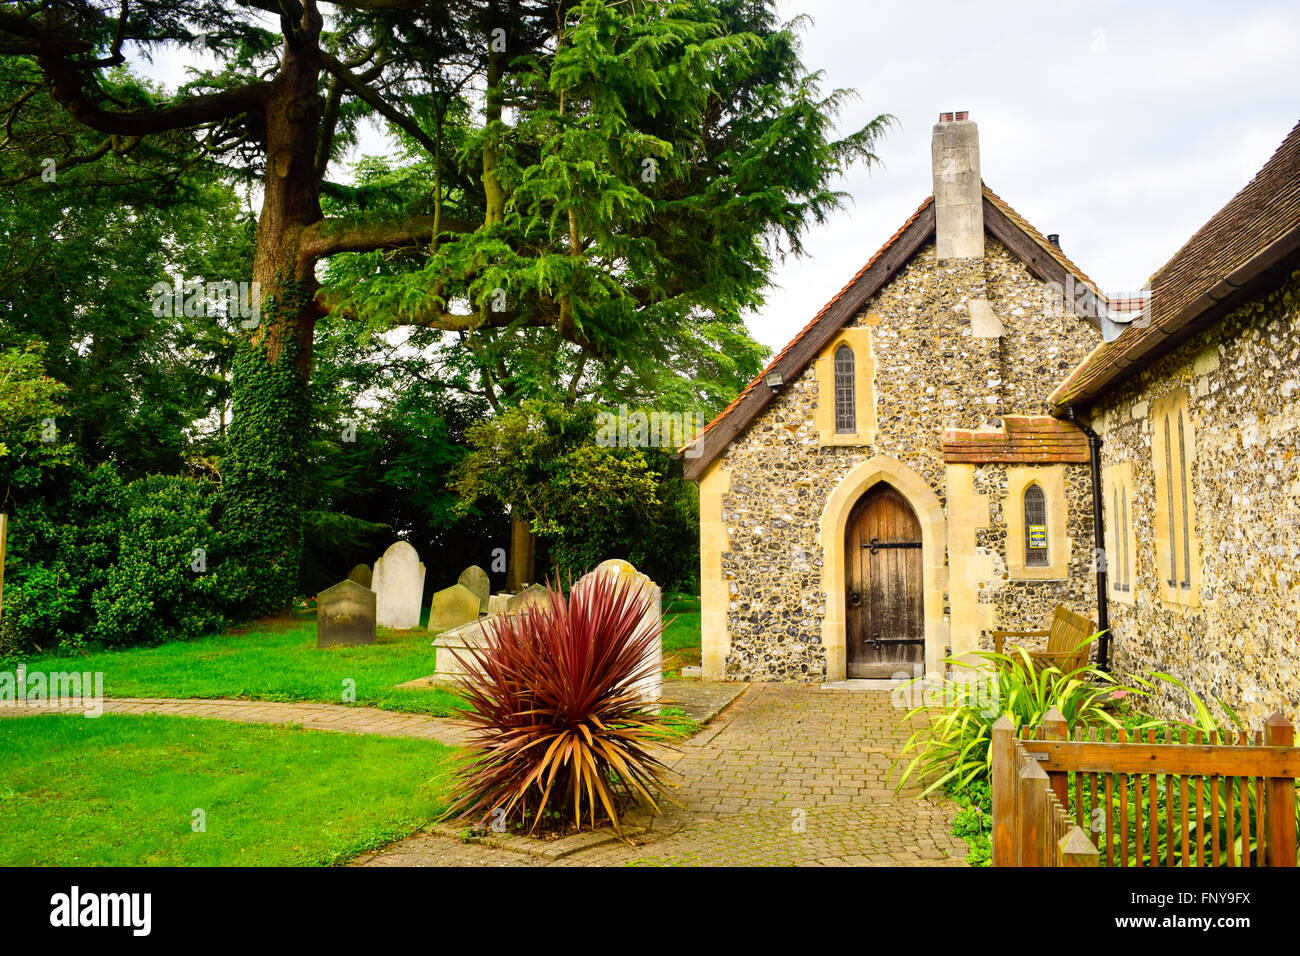 Diocese of Guildford. Parish Church of St. Mary the Virgin. Chessington. London, United Kingdom Stock Photo